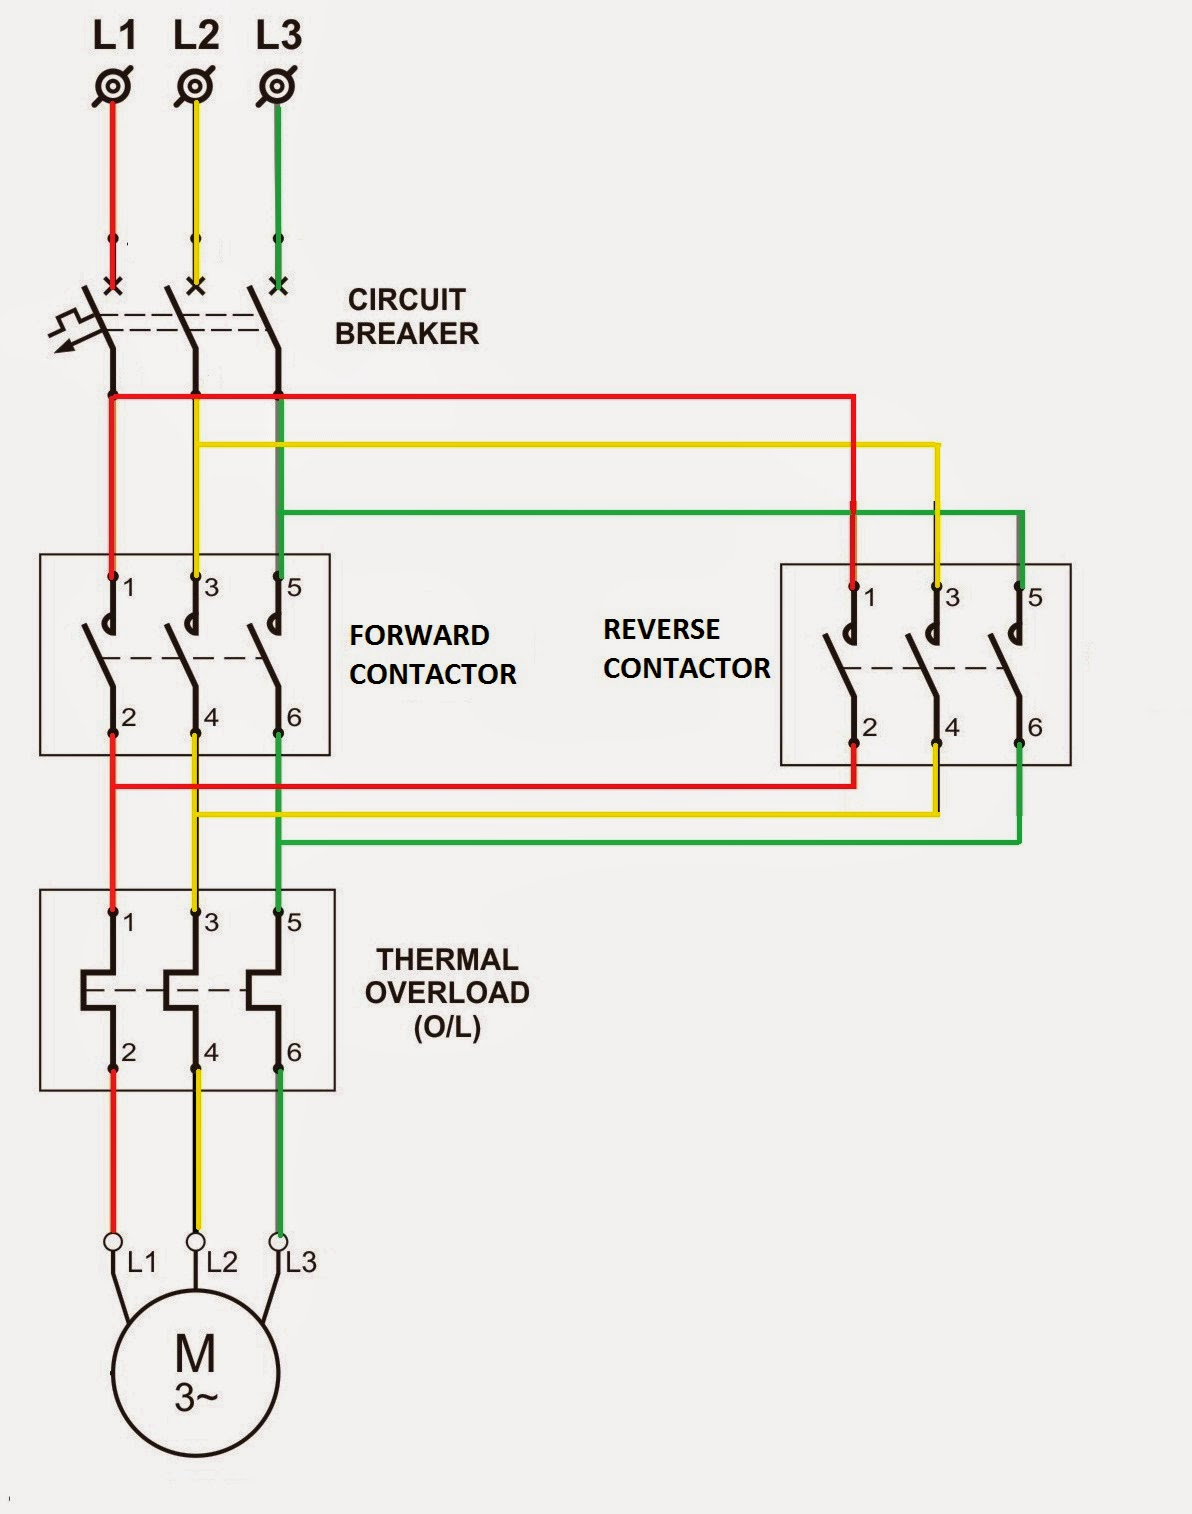 l3 wiring diagram a video on how to wire kicker stuff for joshee Single Phase Reversing Switch Wiring wiring diagram for reversing contactor the wiring diagram reversing motor contactor wiring diagram nodasystech wiring diagram